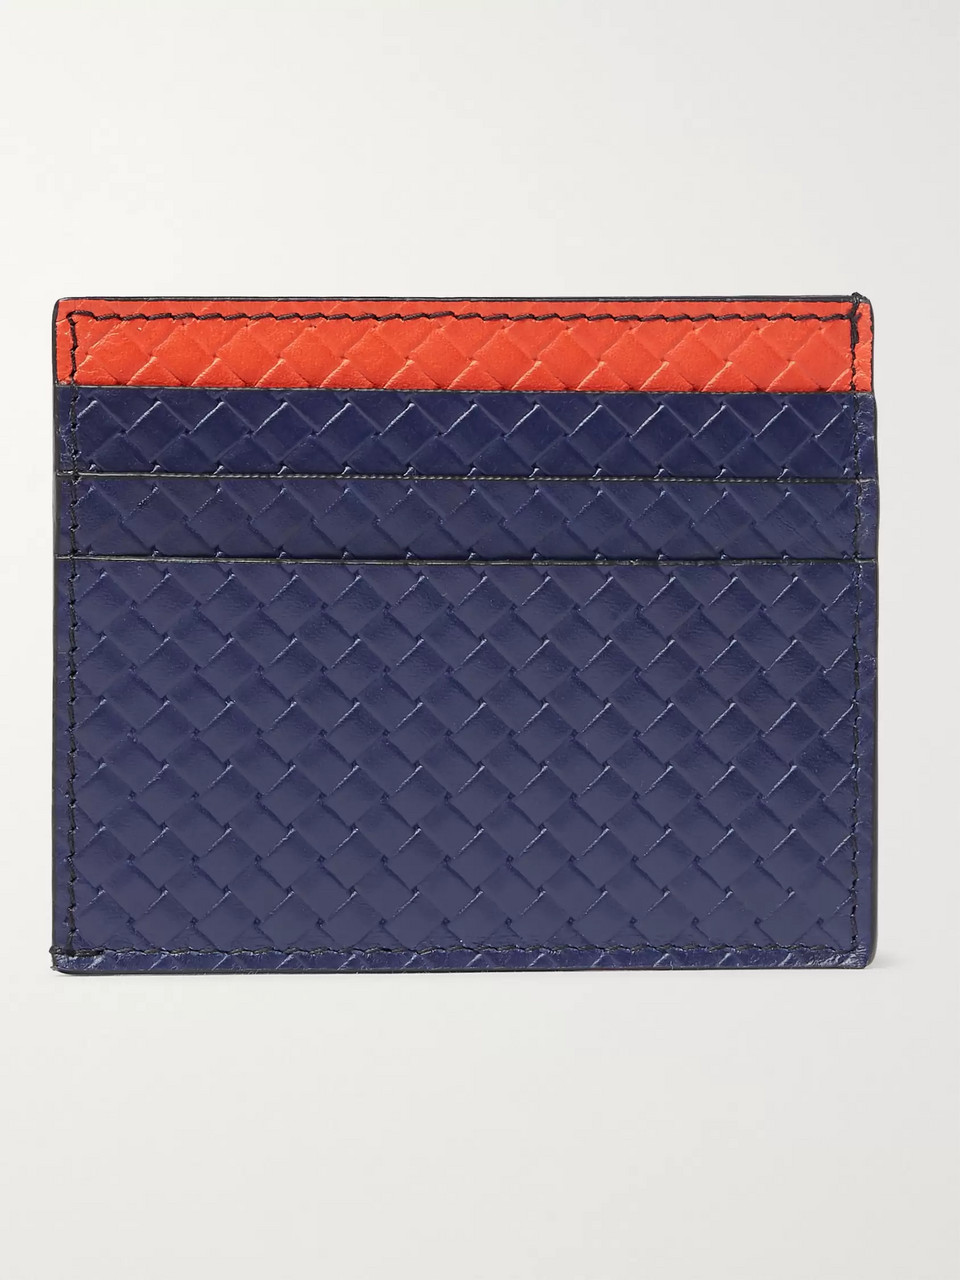 Bottega Veneta Micro Embossed Leather Cardholder